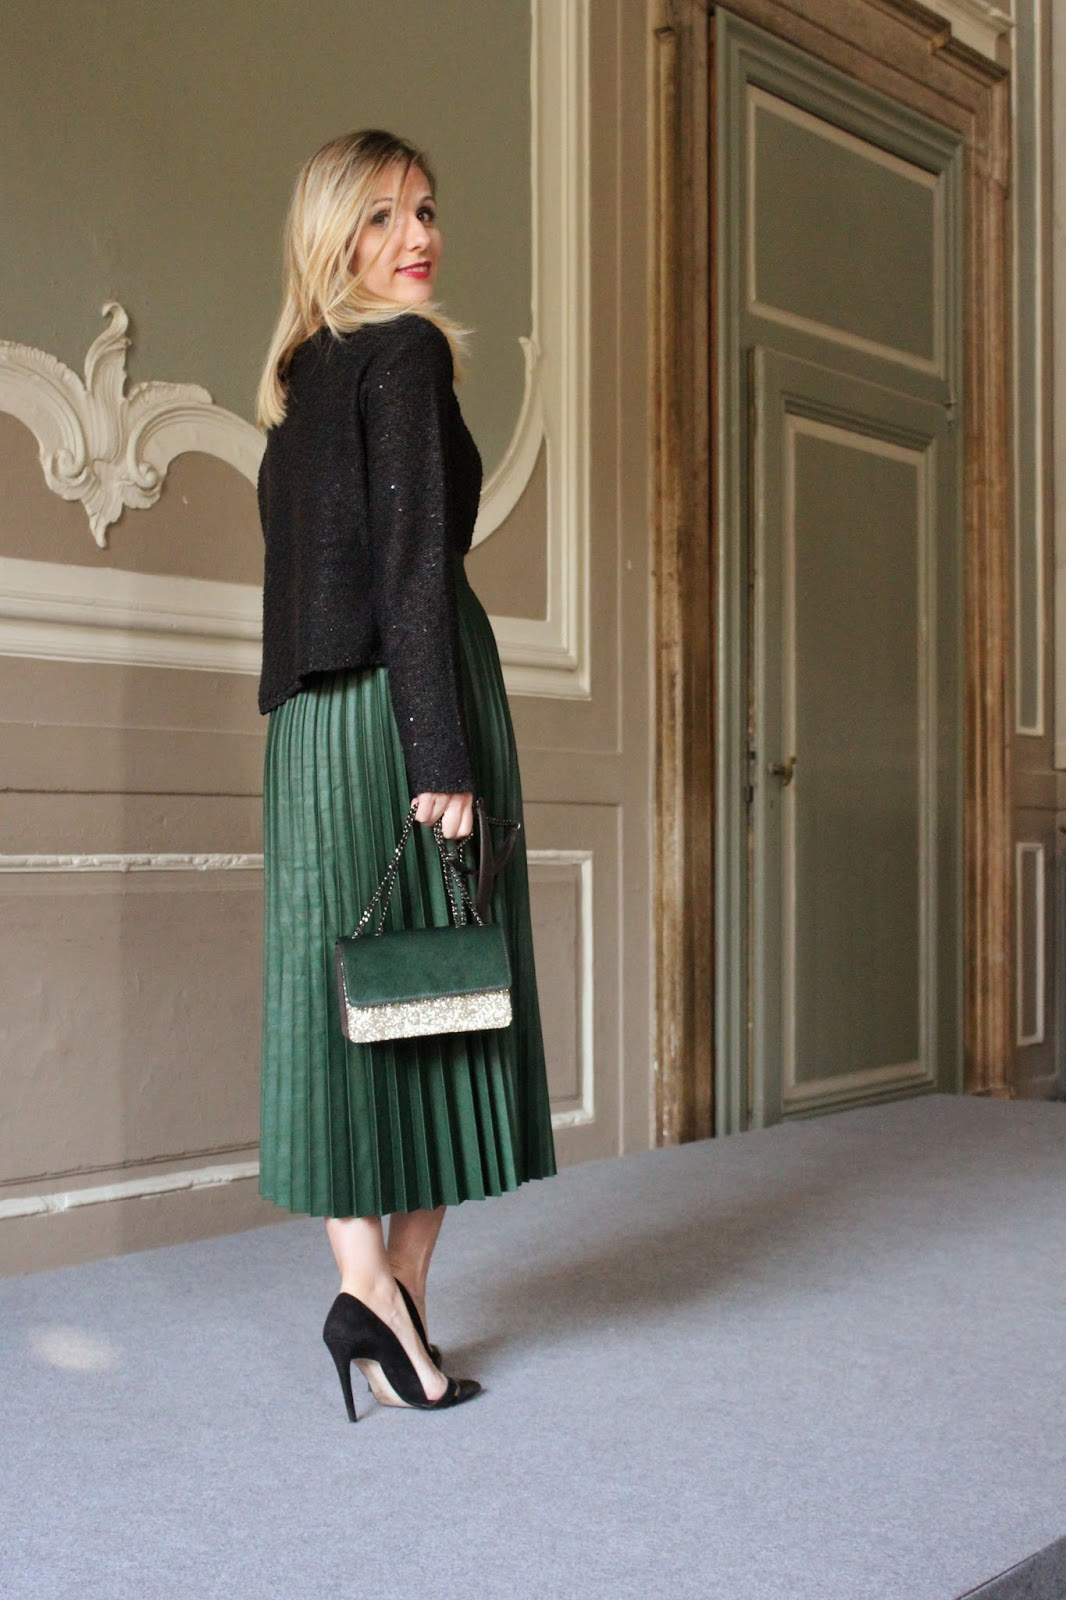 Eniwhere Fashion - Pleated green skirt